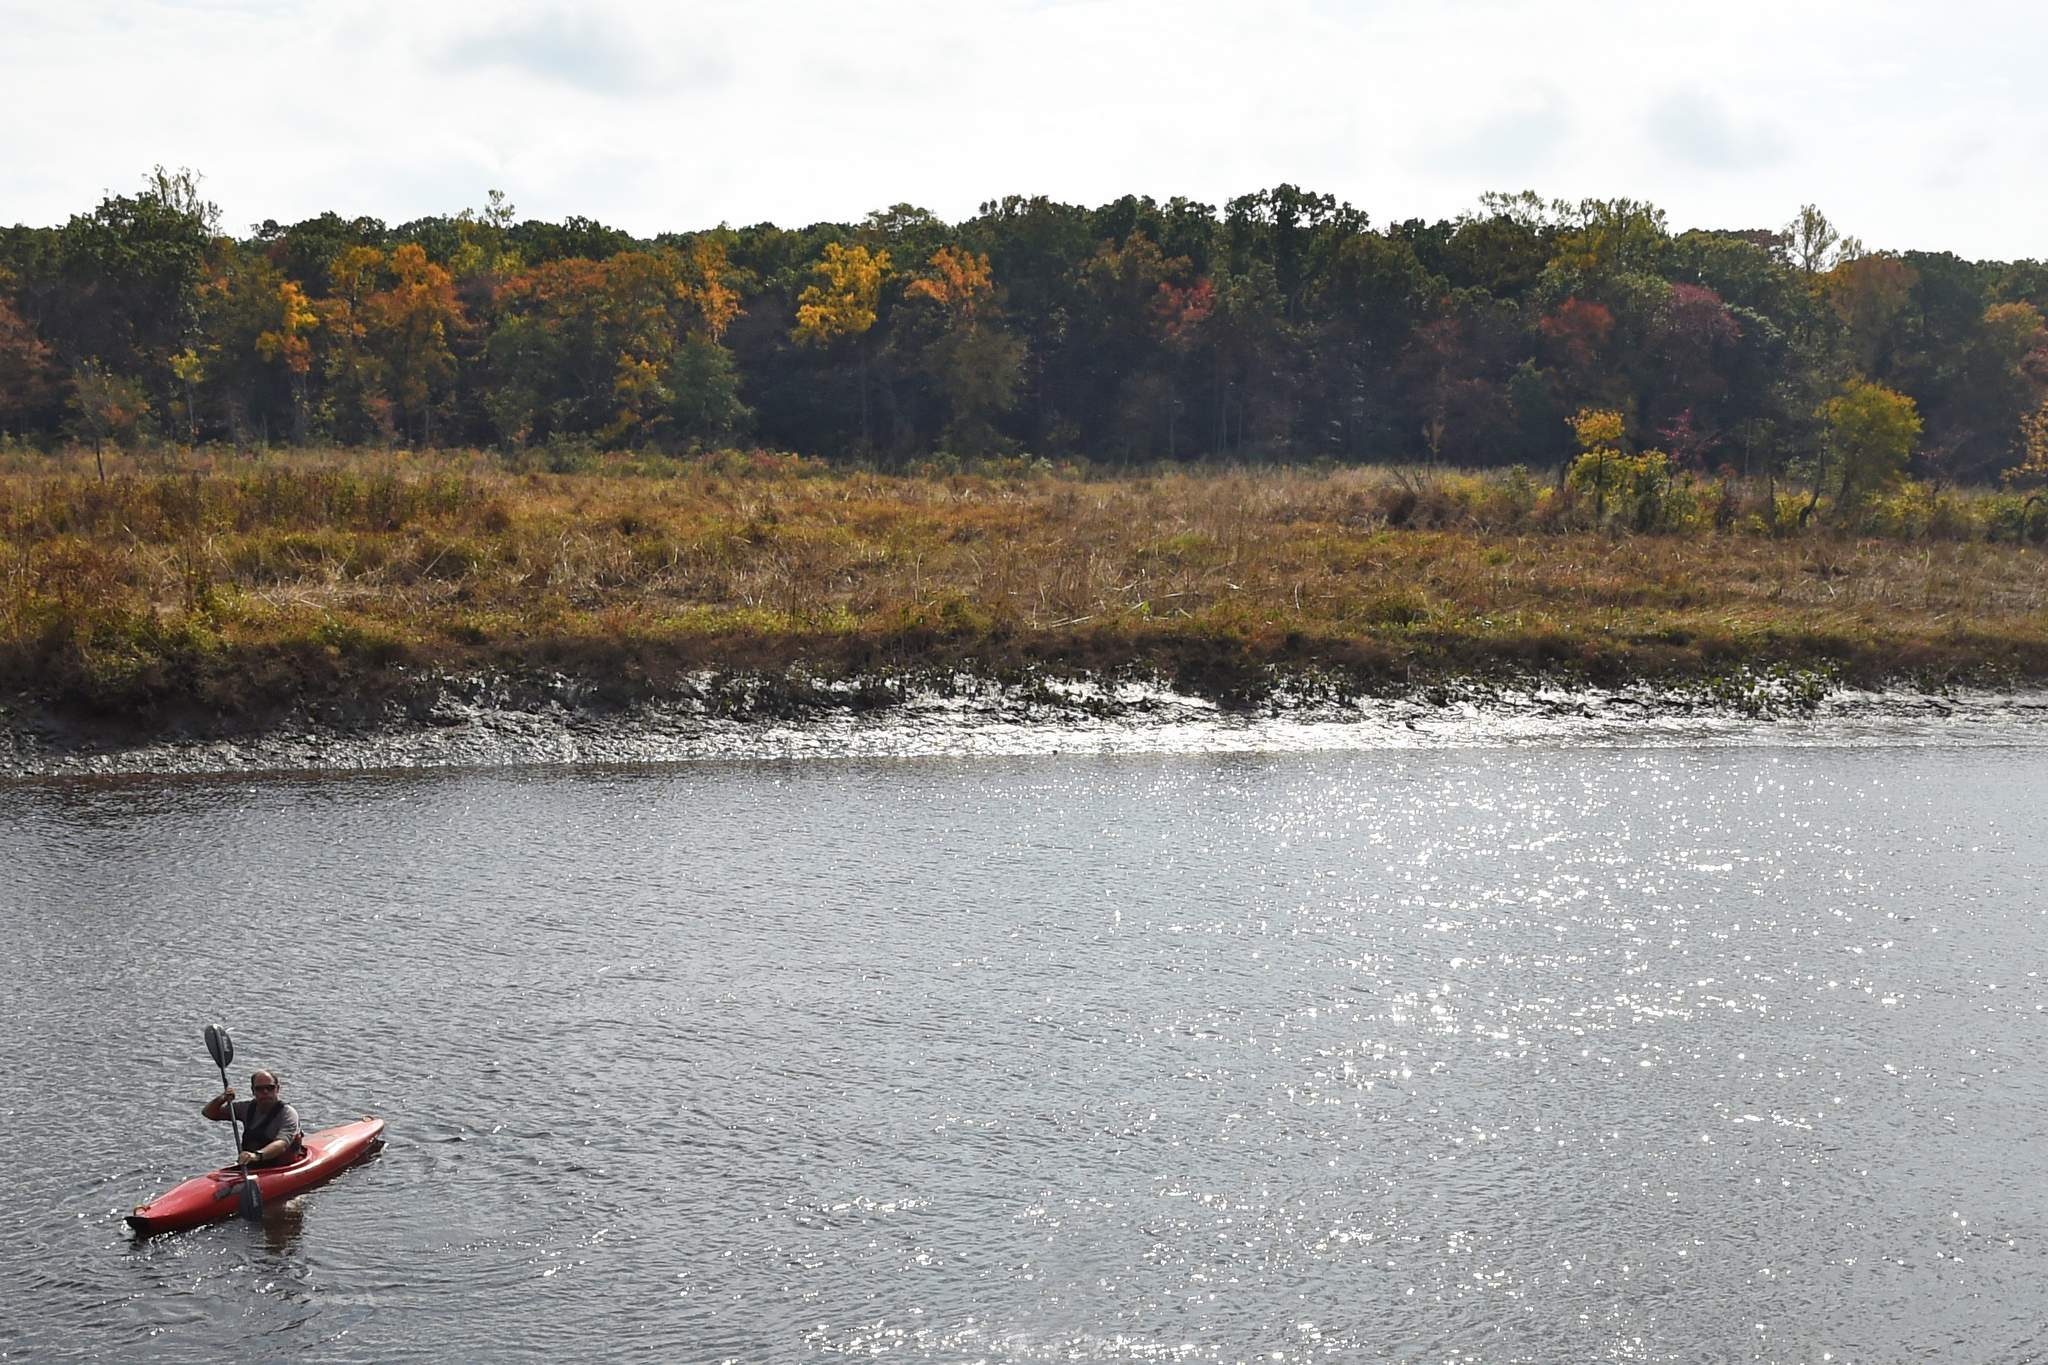 """Kayaker John Anderson on the Rancocas. Rancocas Creek is """"is a common resource we can all enjoy,"""" he says."""